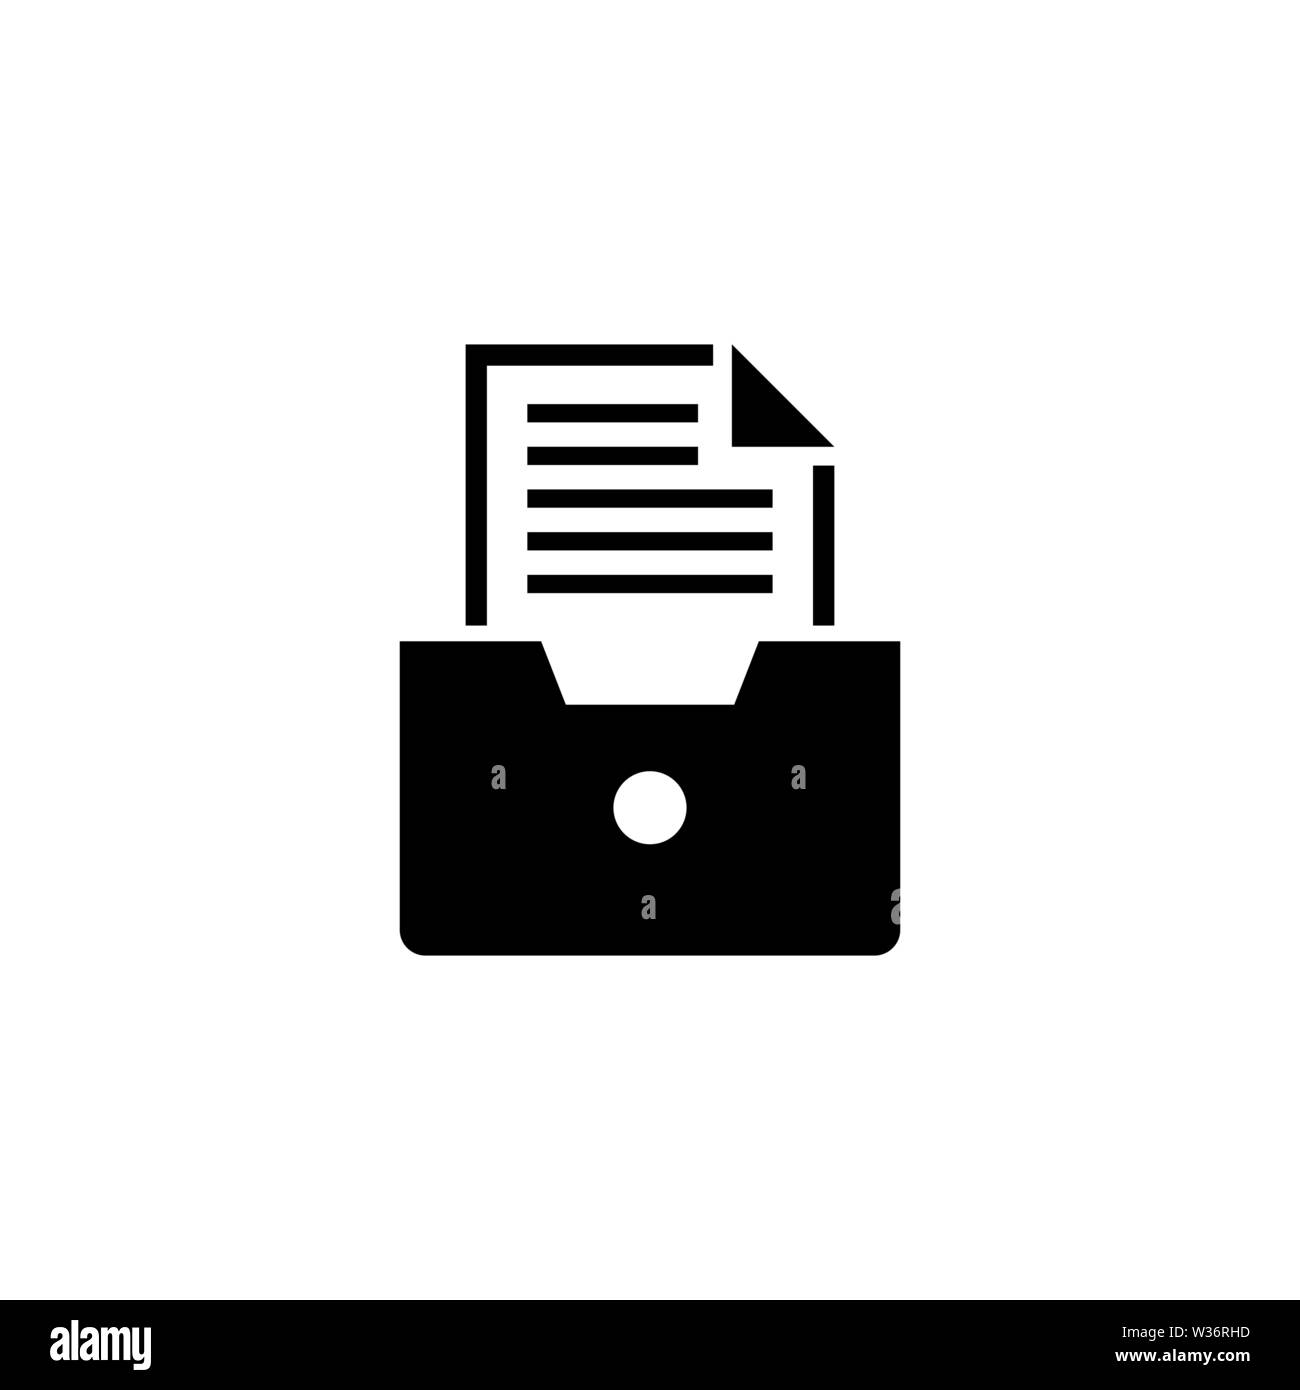 File Drawer, Archive Document. Flat Vector Icon illustration. Simple black symbol on white background. File Drawer, Archive Document sign design templ - Stock Image